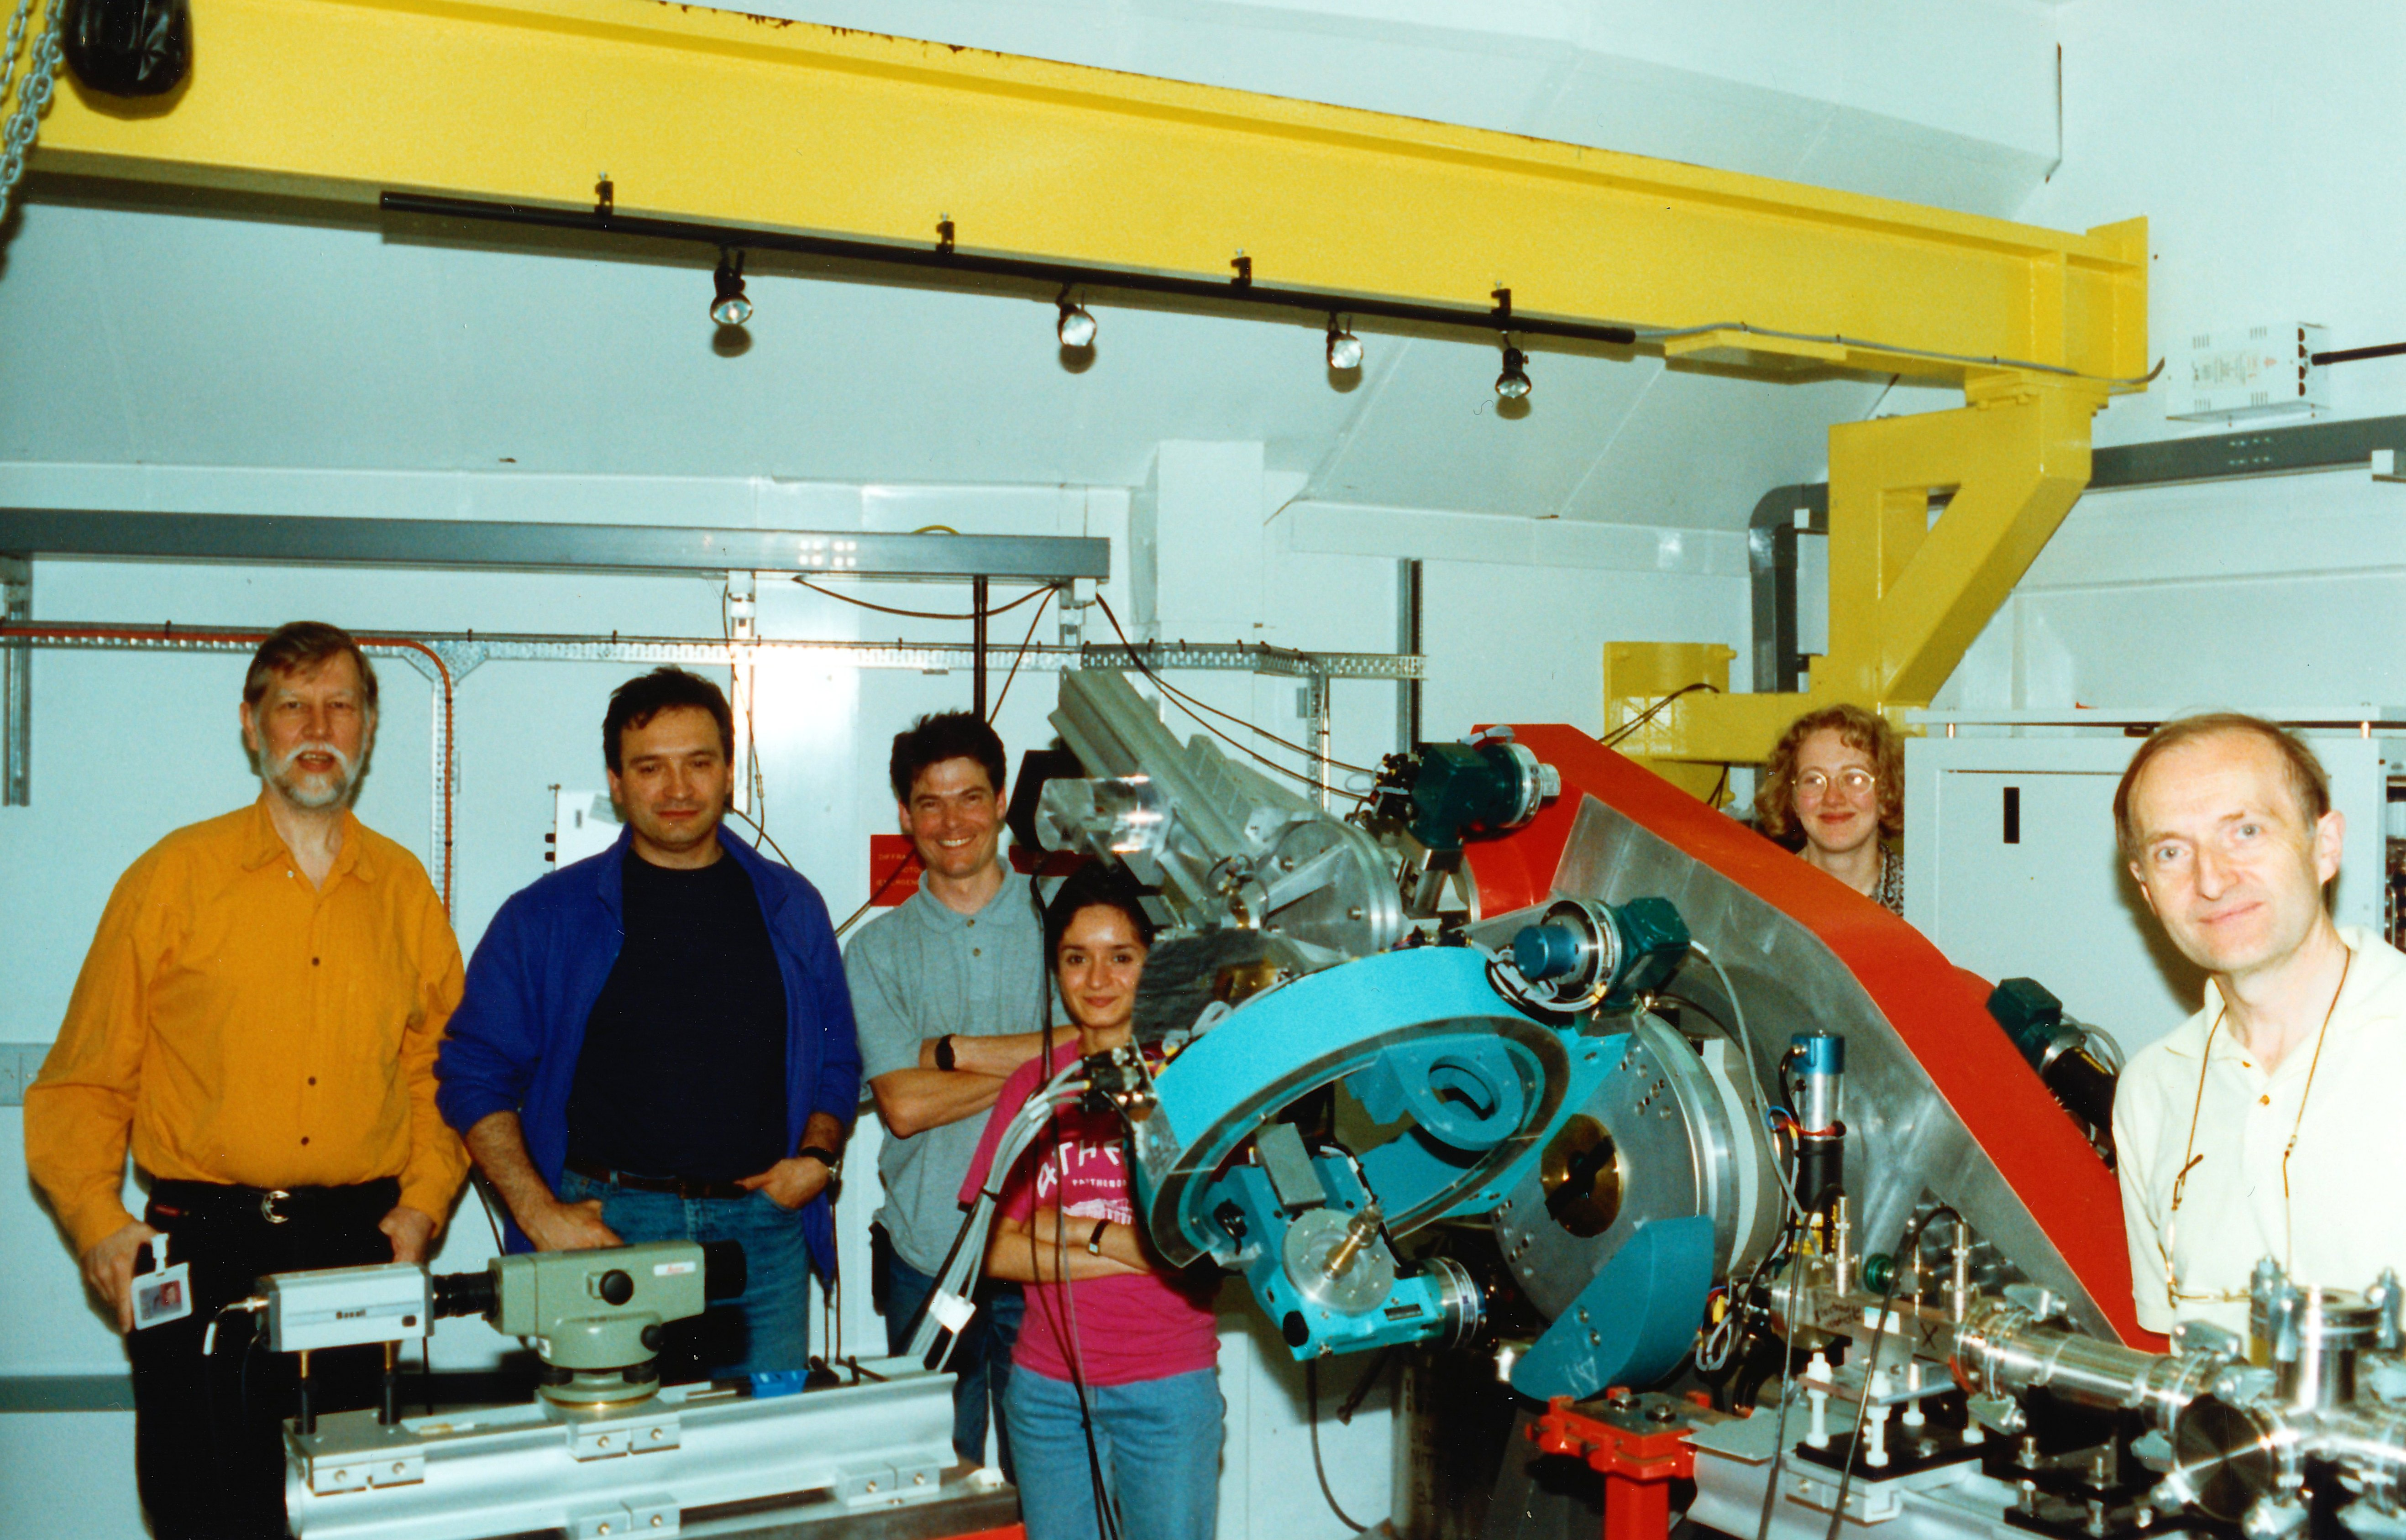 02May98.jpg - John Reid, Gregory Kowalski, Steve Collins, Mina Golshan, Bridget Murphy, Moreton Moore setting up at station 16.3 in May 1998